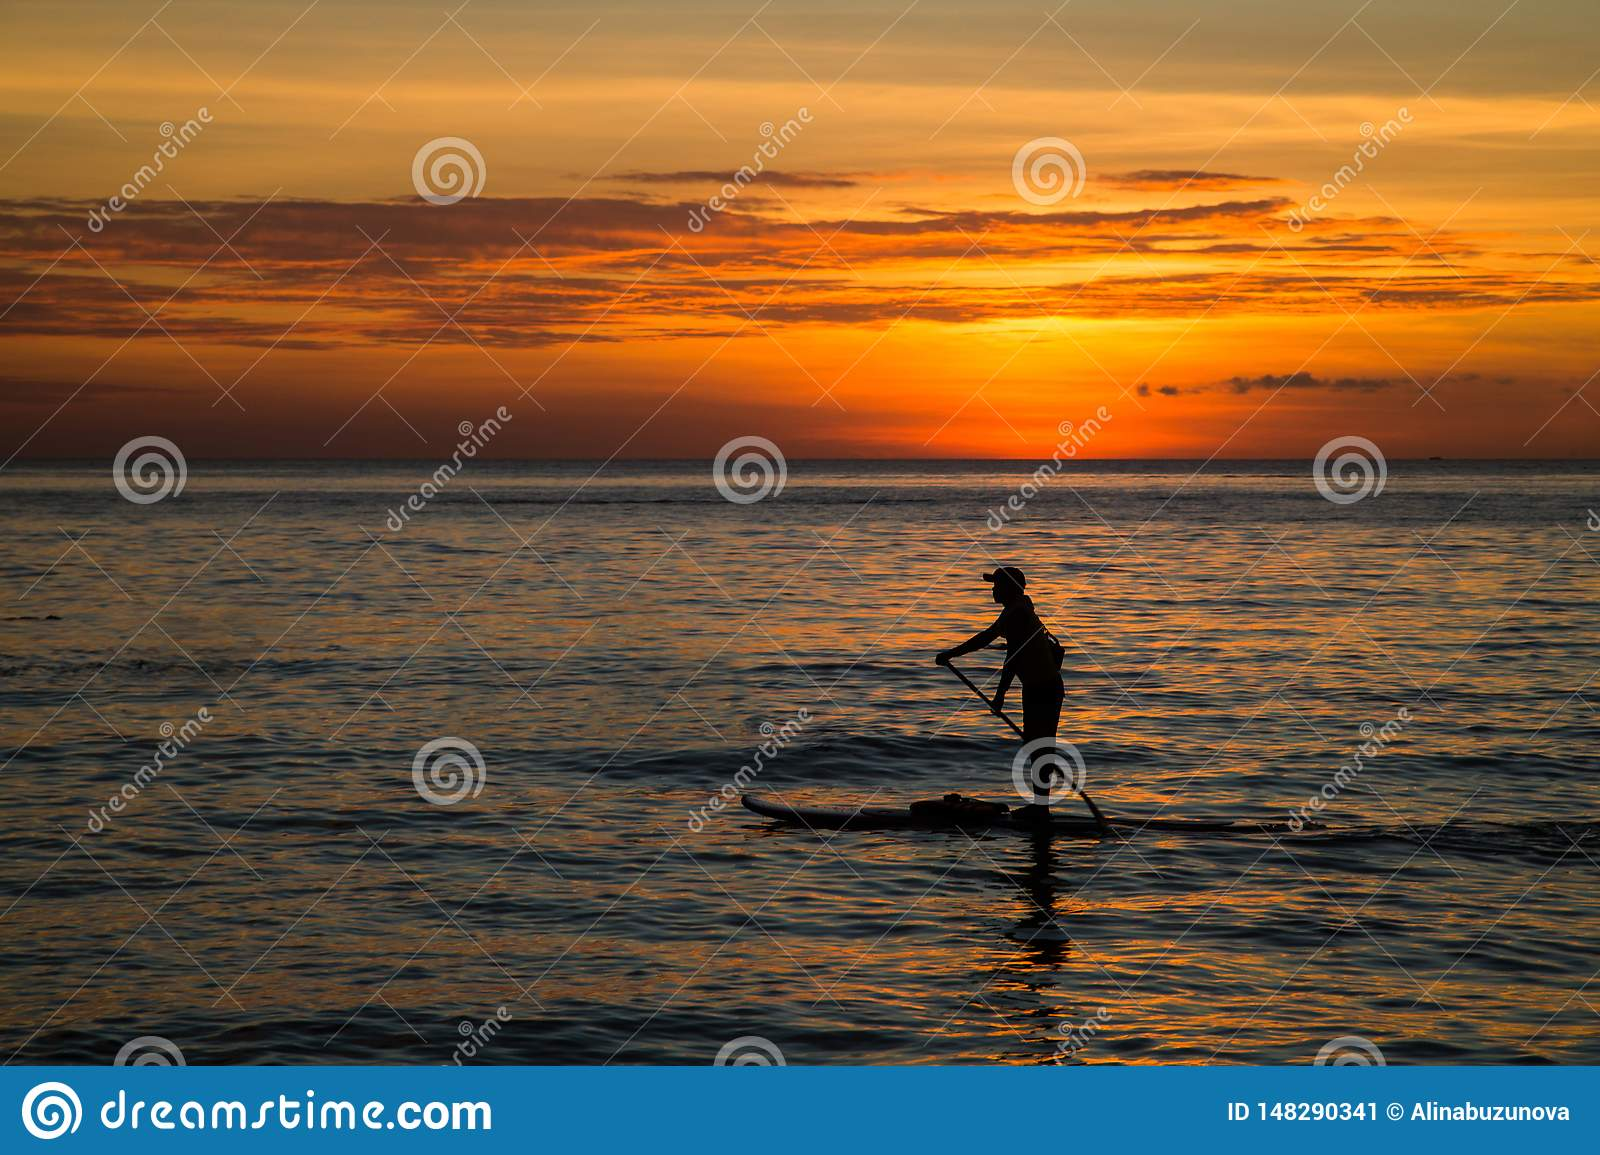 Silhouette of young man paddling on a SUP board in the sea at sunset, rear view